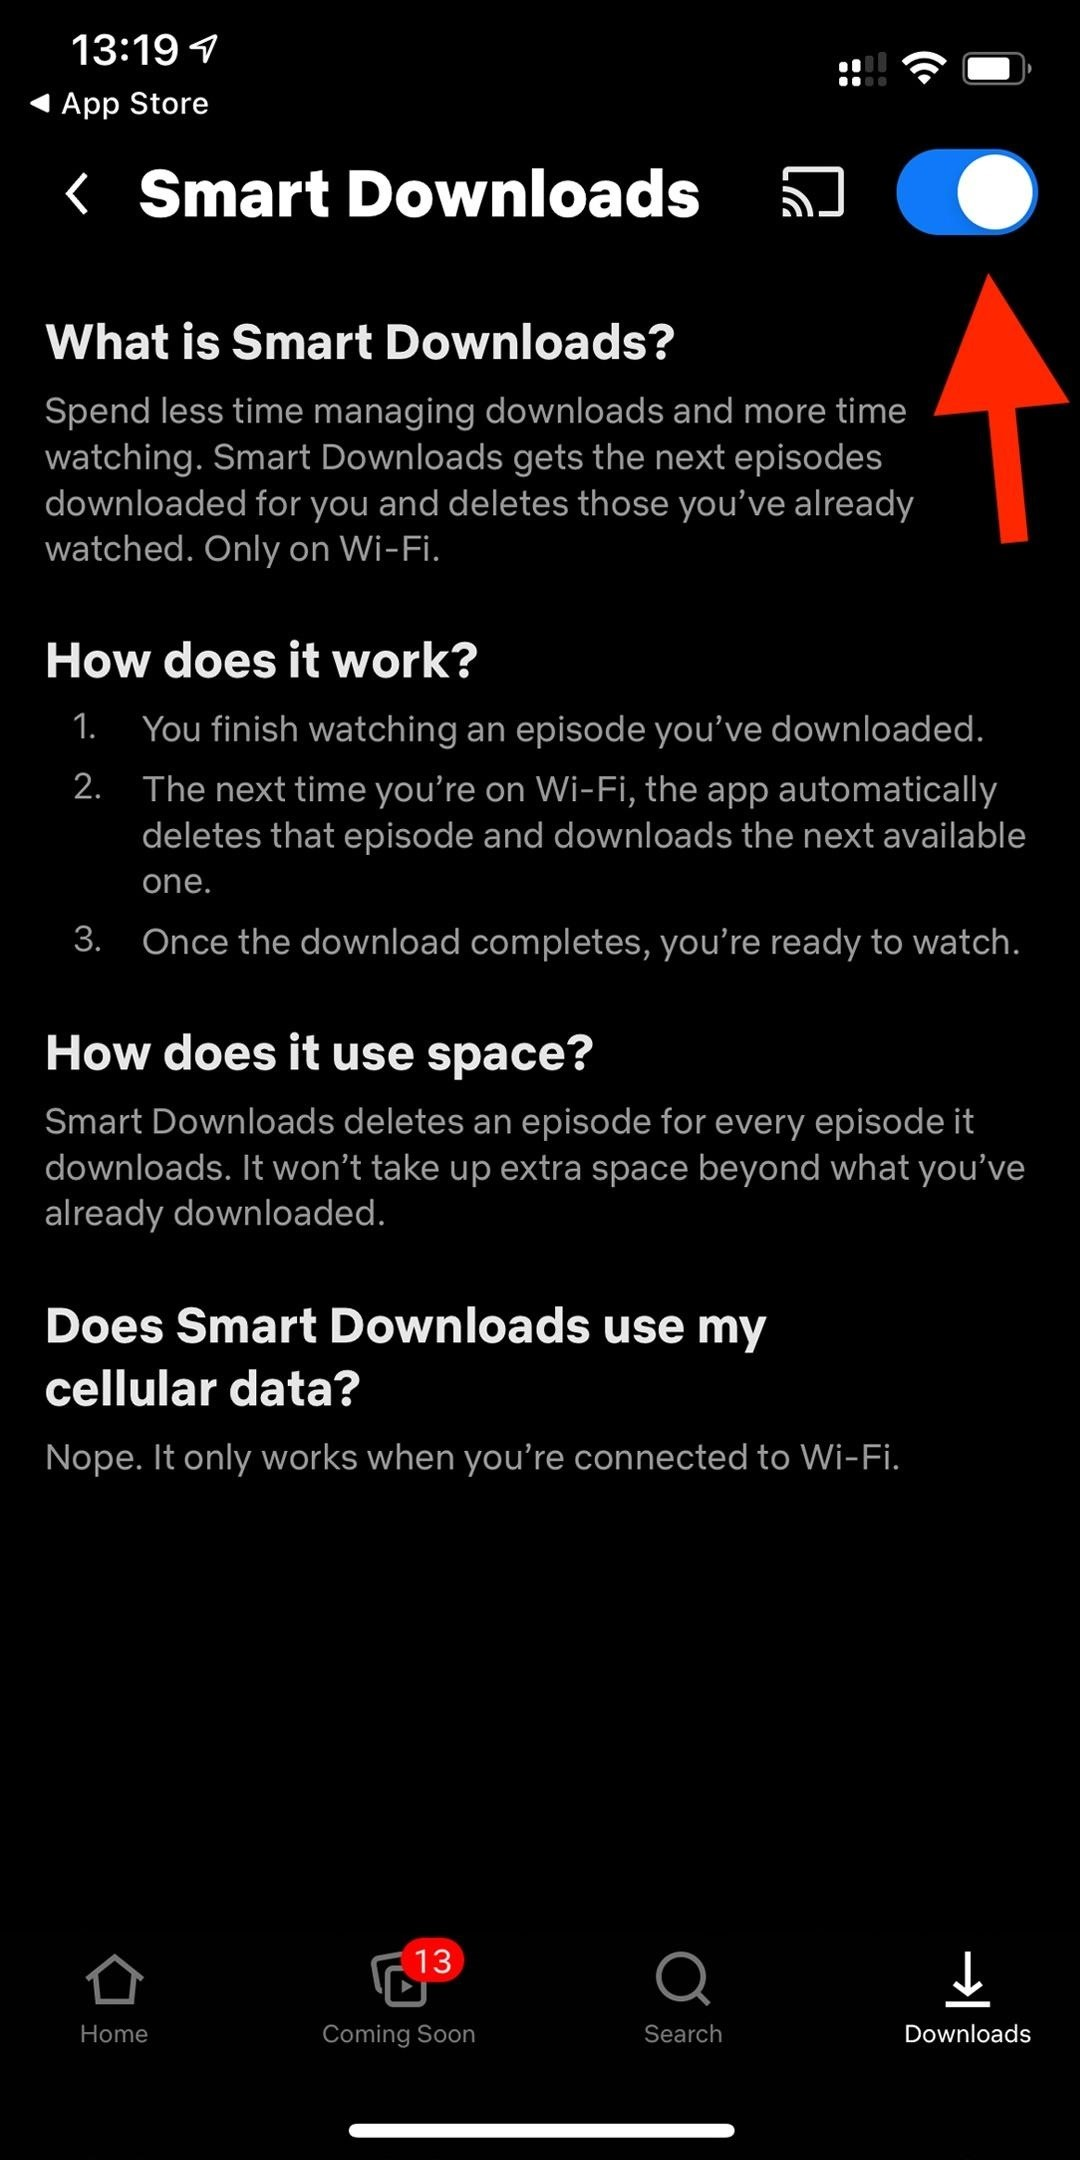 How to automatically download the next episode of a show on Netflix after watching the previous one